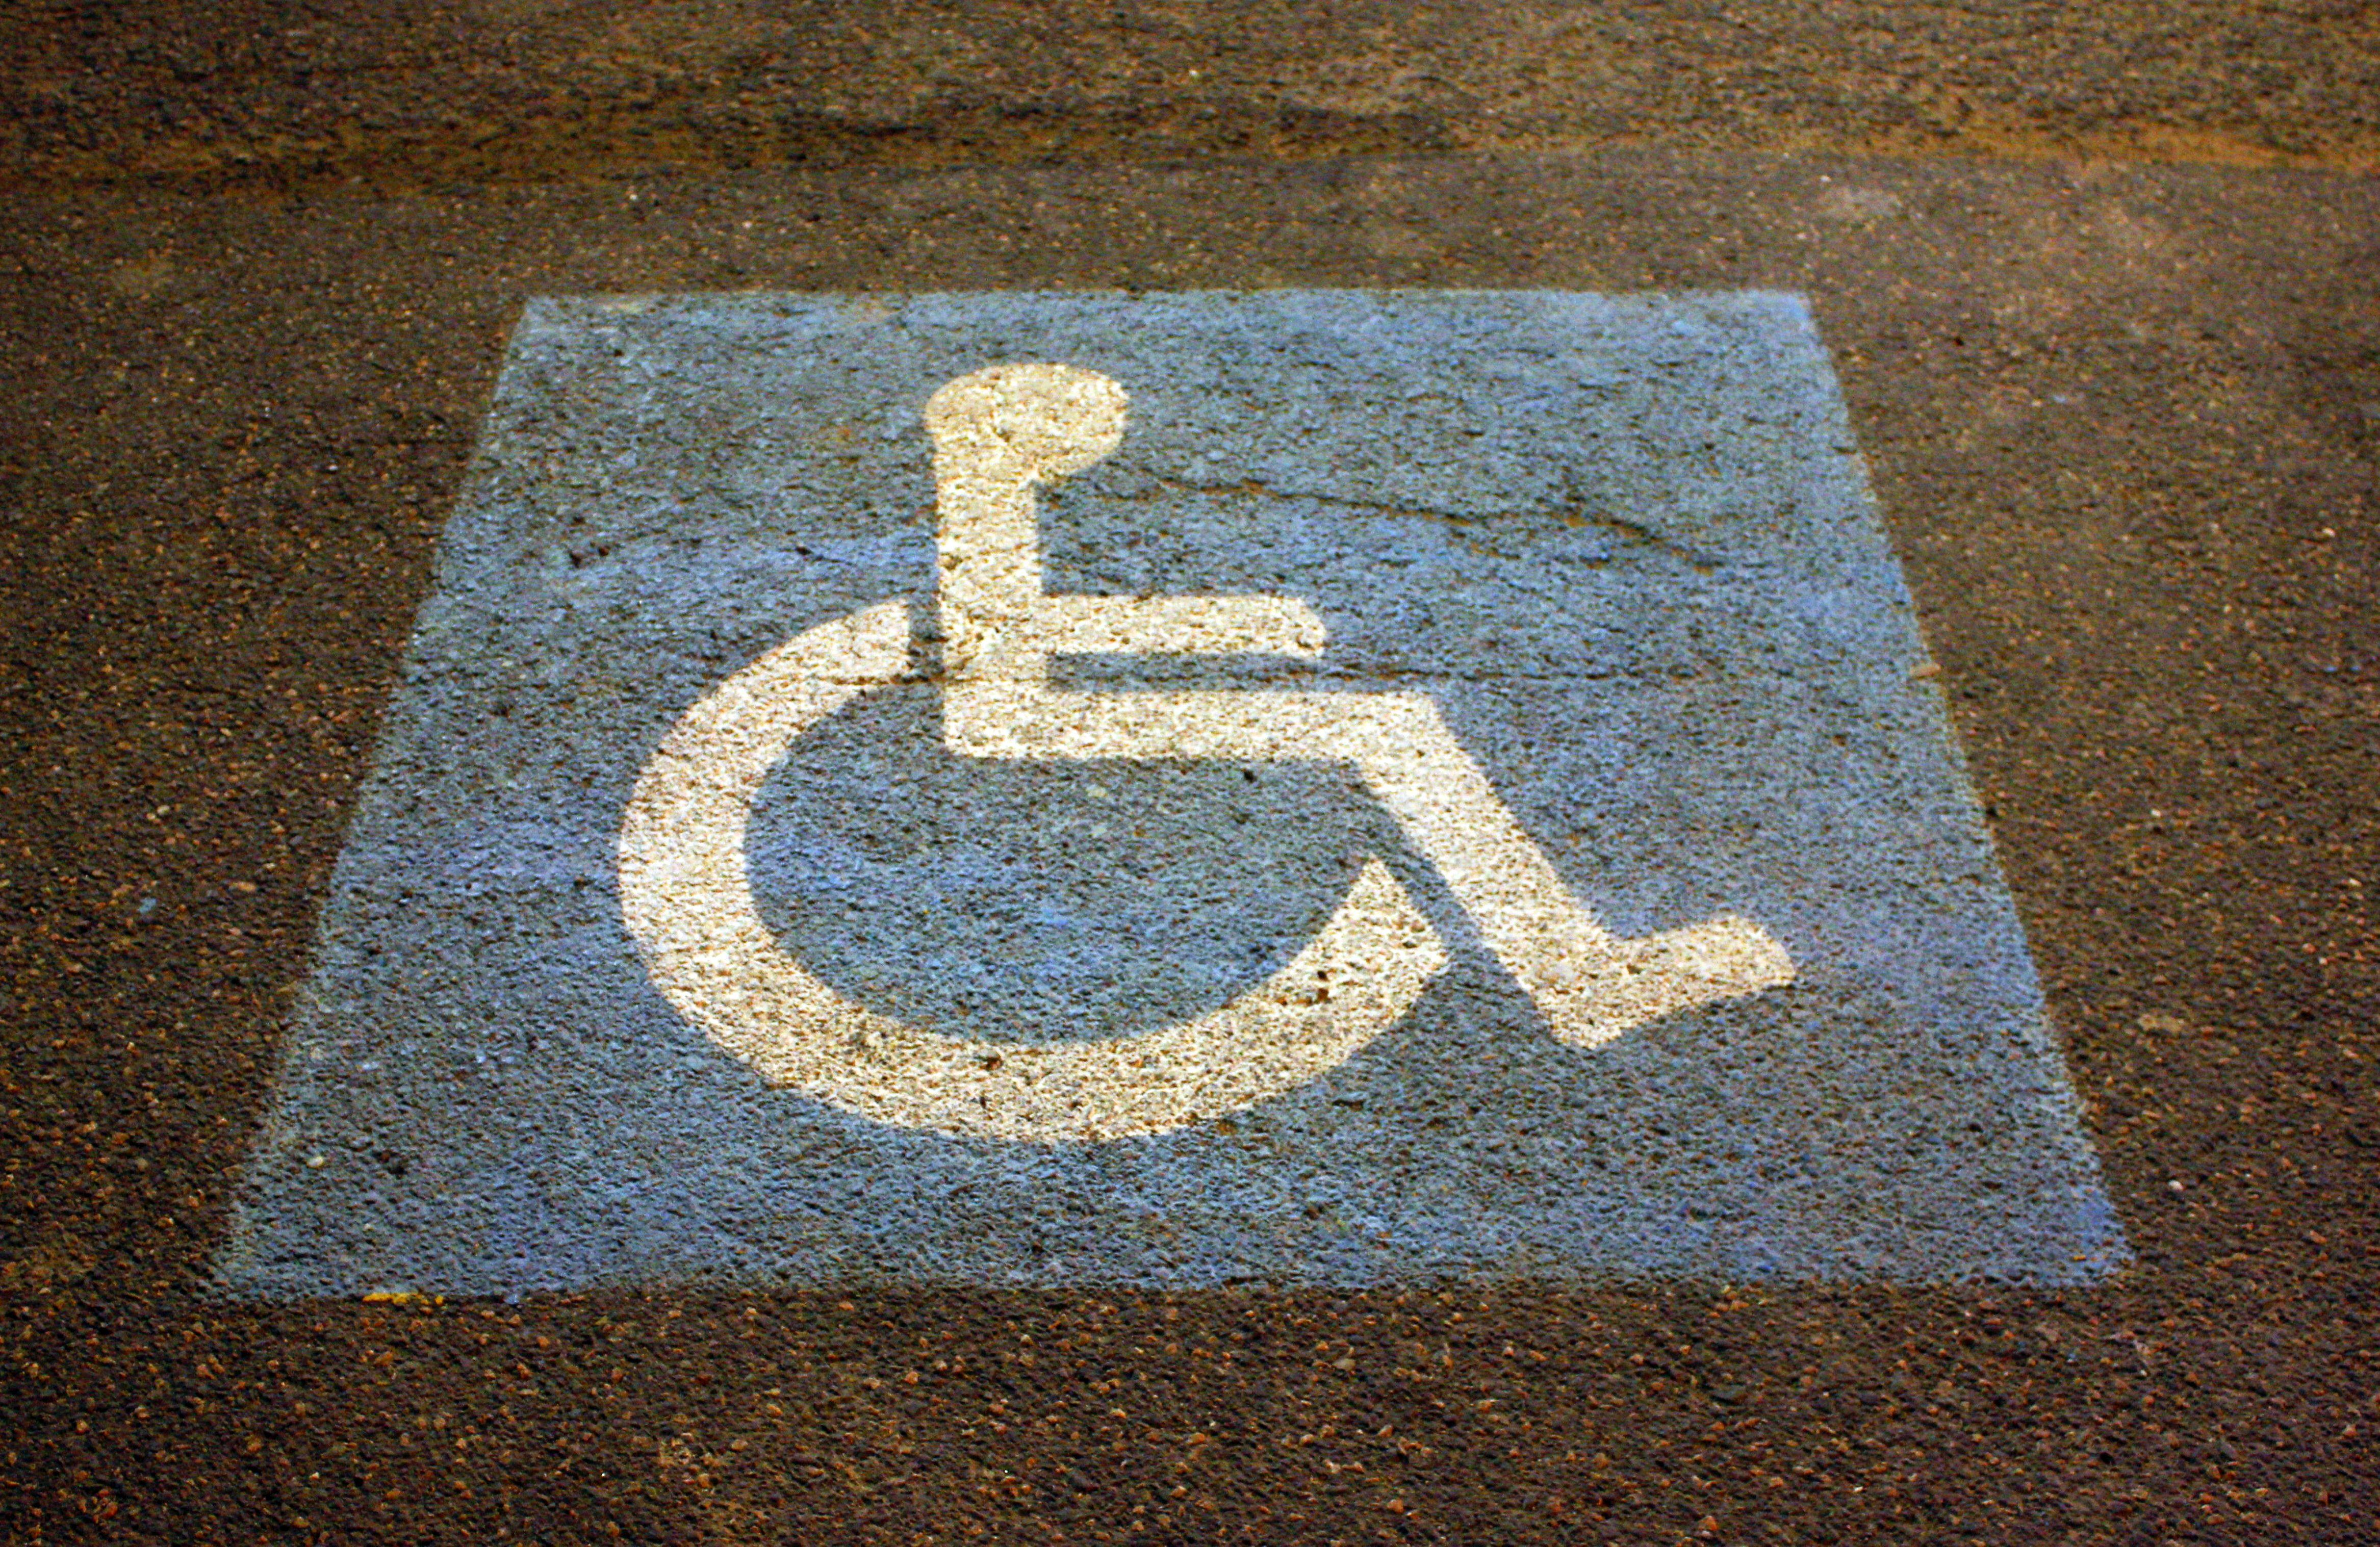 Americans disabilities